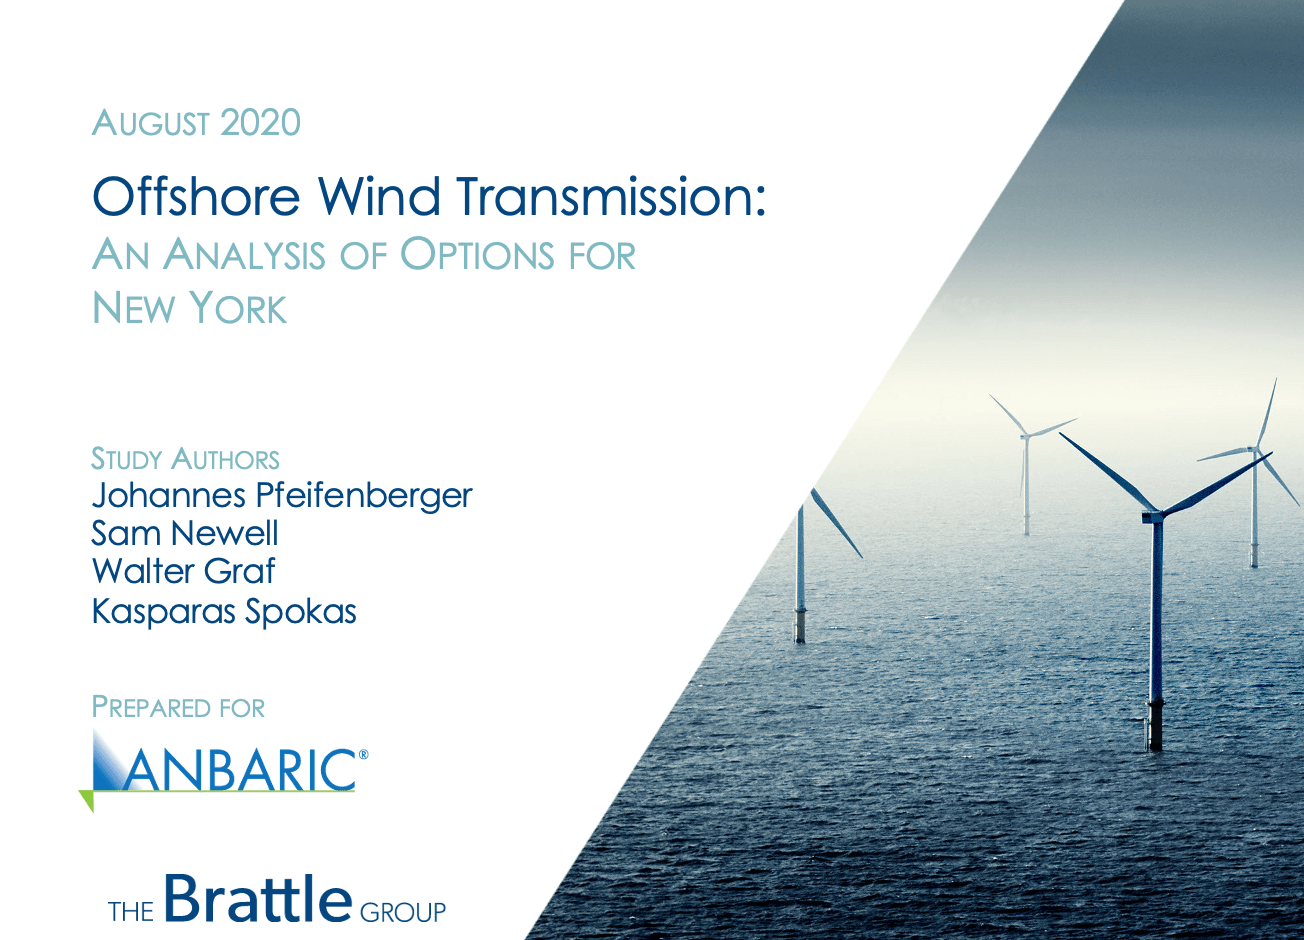 Report Finds $500M in Cost Savings and Reduced Environmental Impacts and Risk with Planned Offshore Wind Transmission for New York